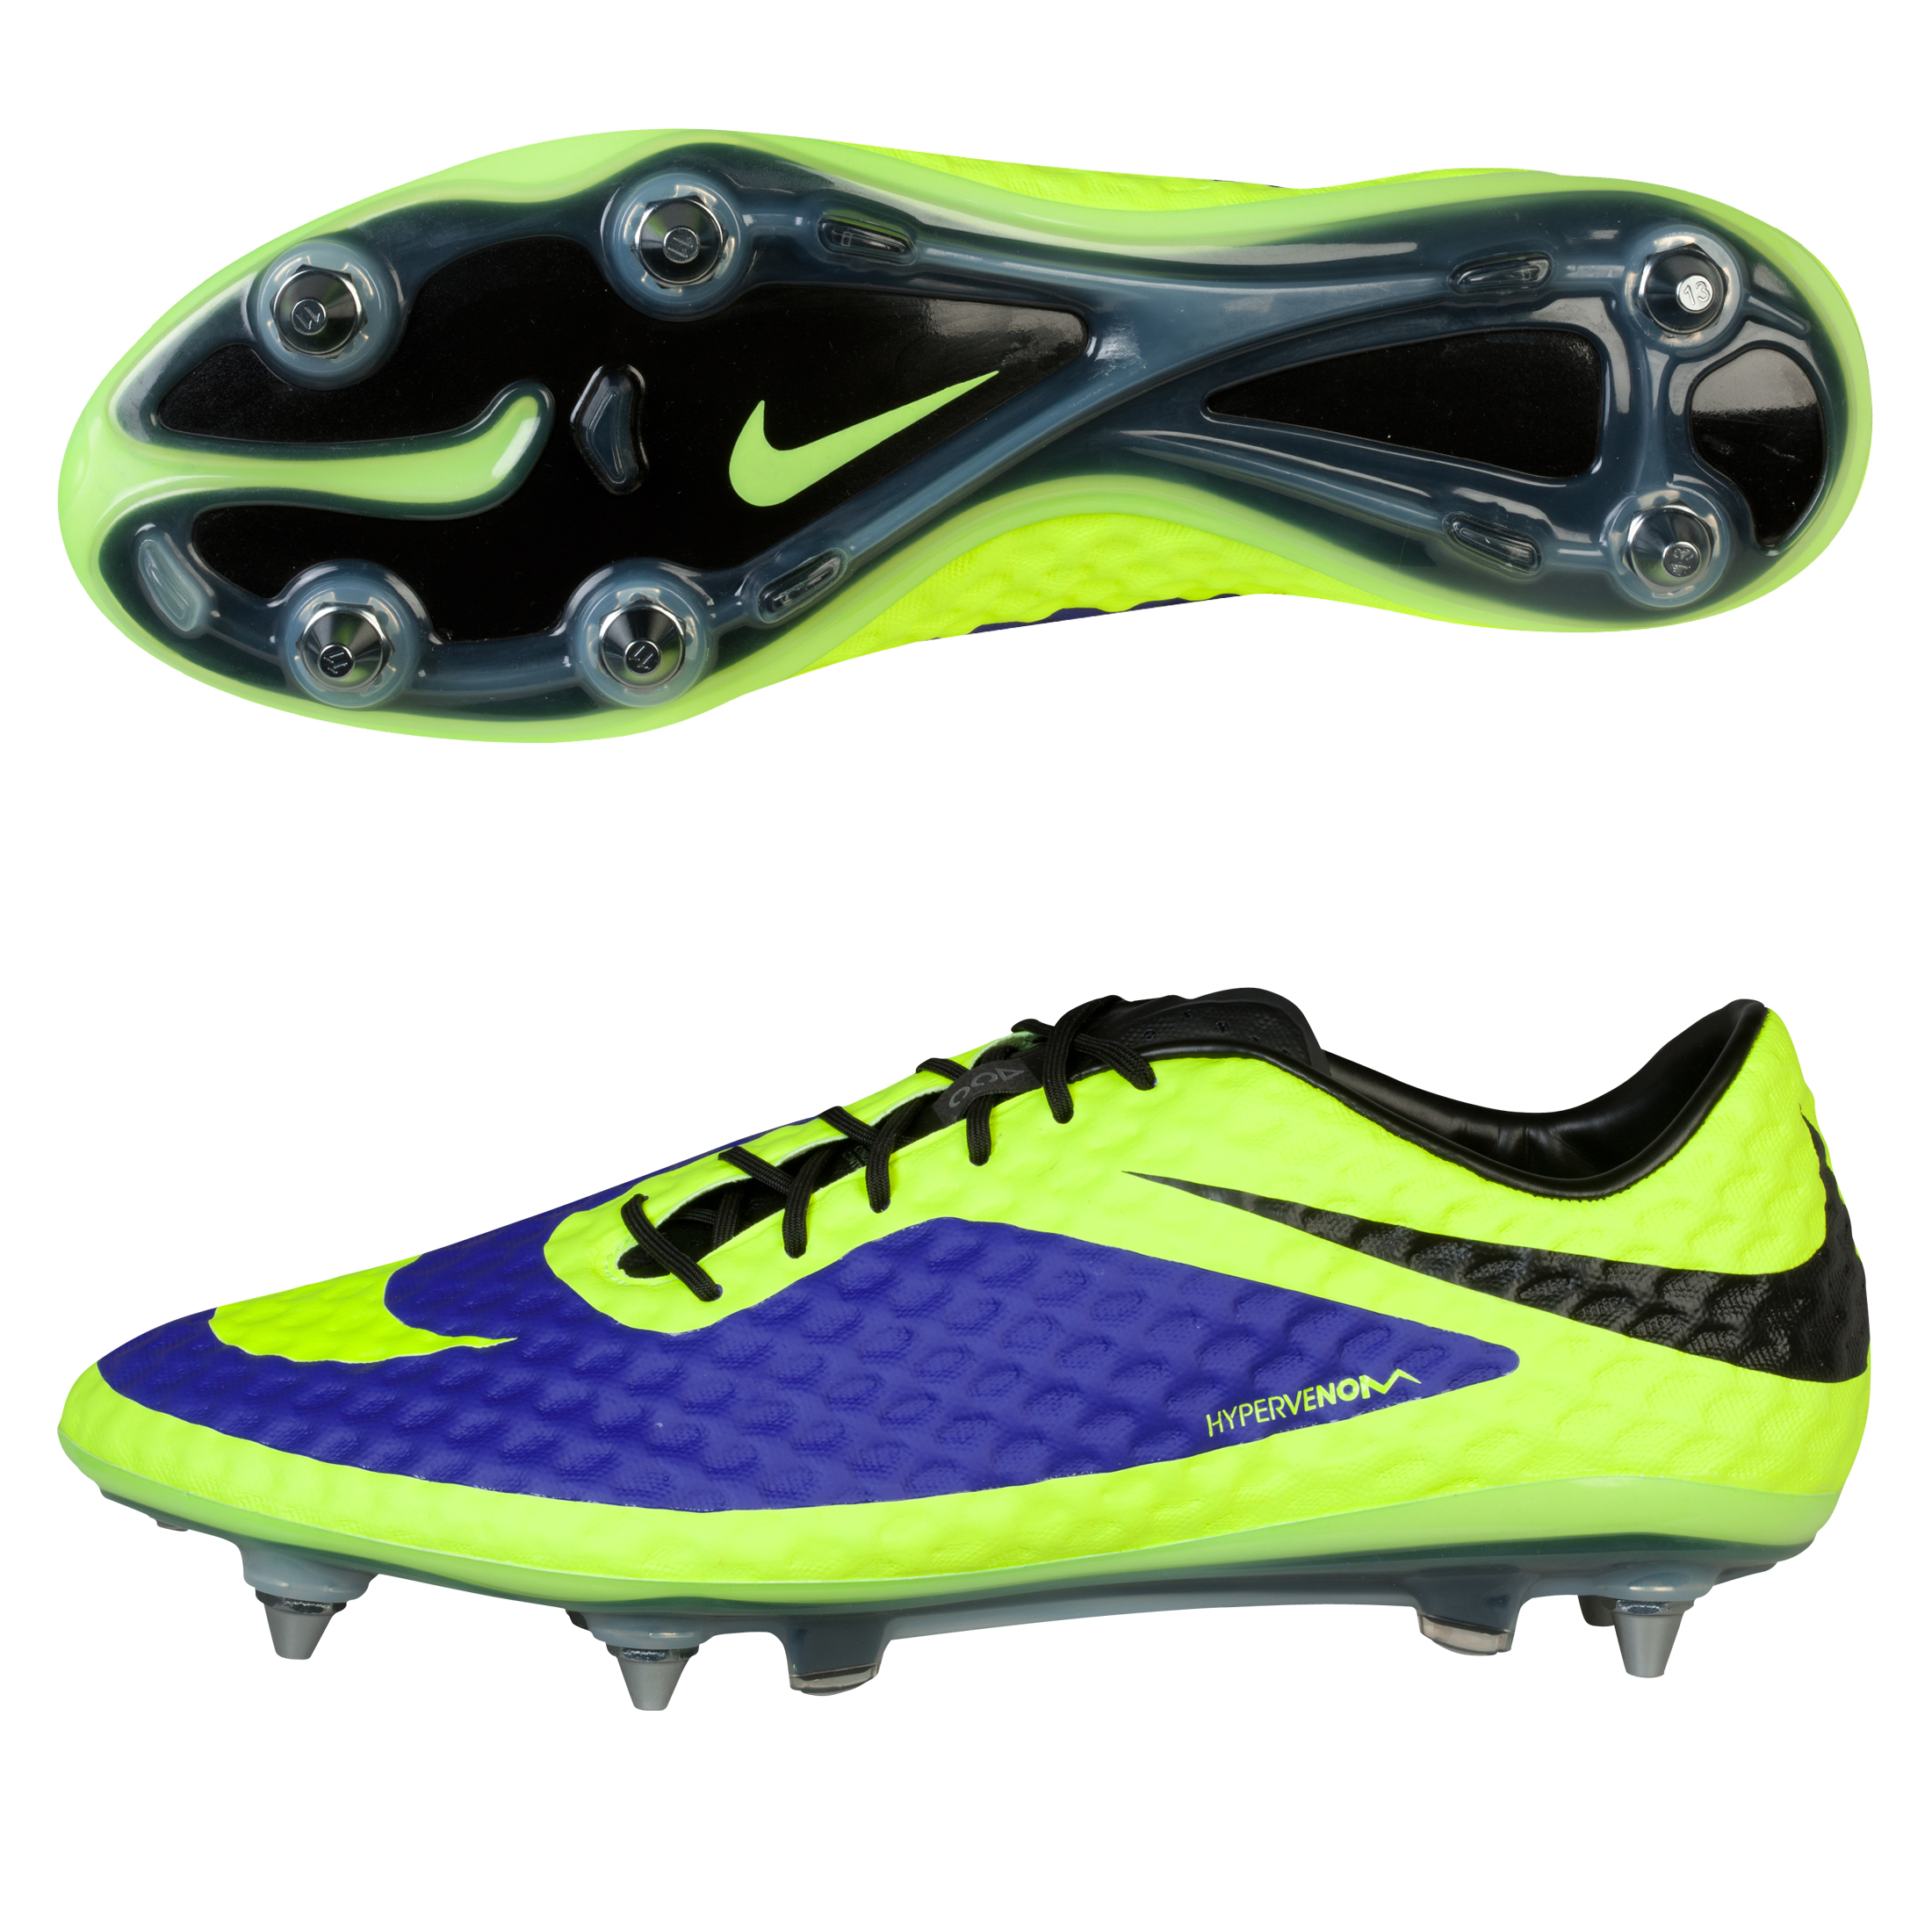 Hypervenom Phantom SG-Pro-Electro Purple/Volt/Black Purple